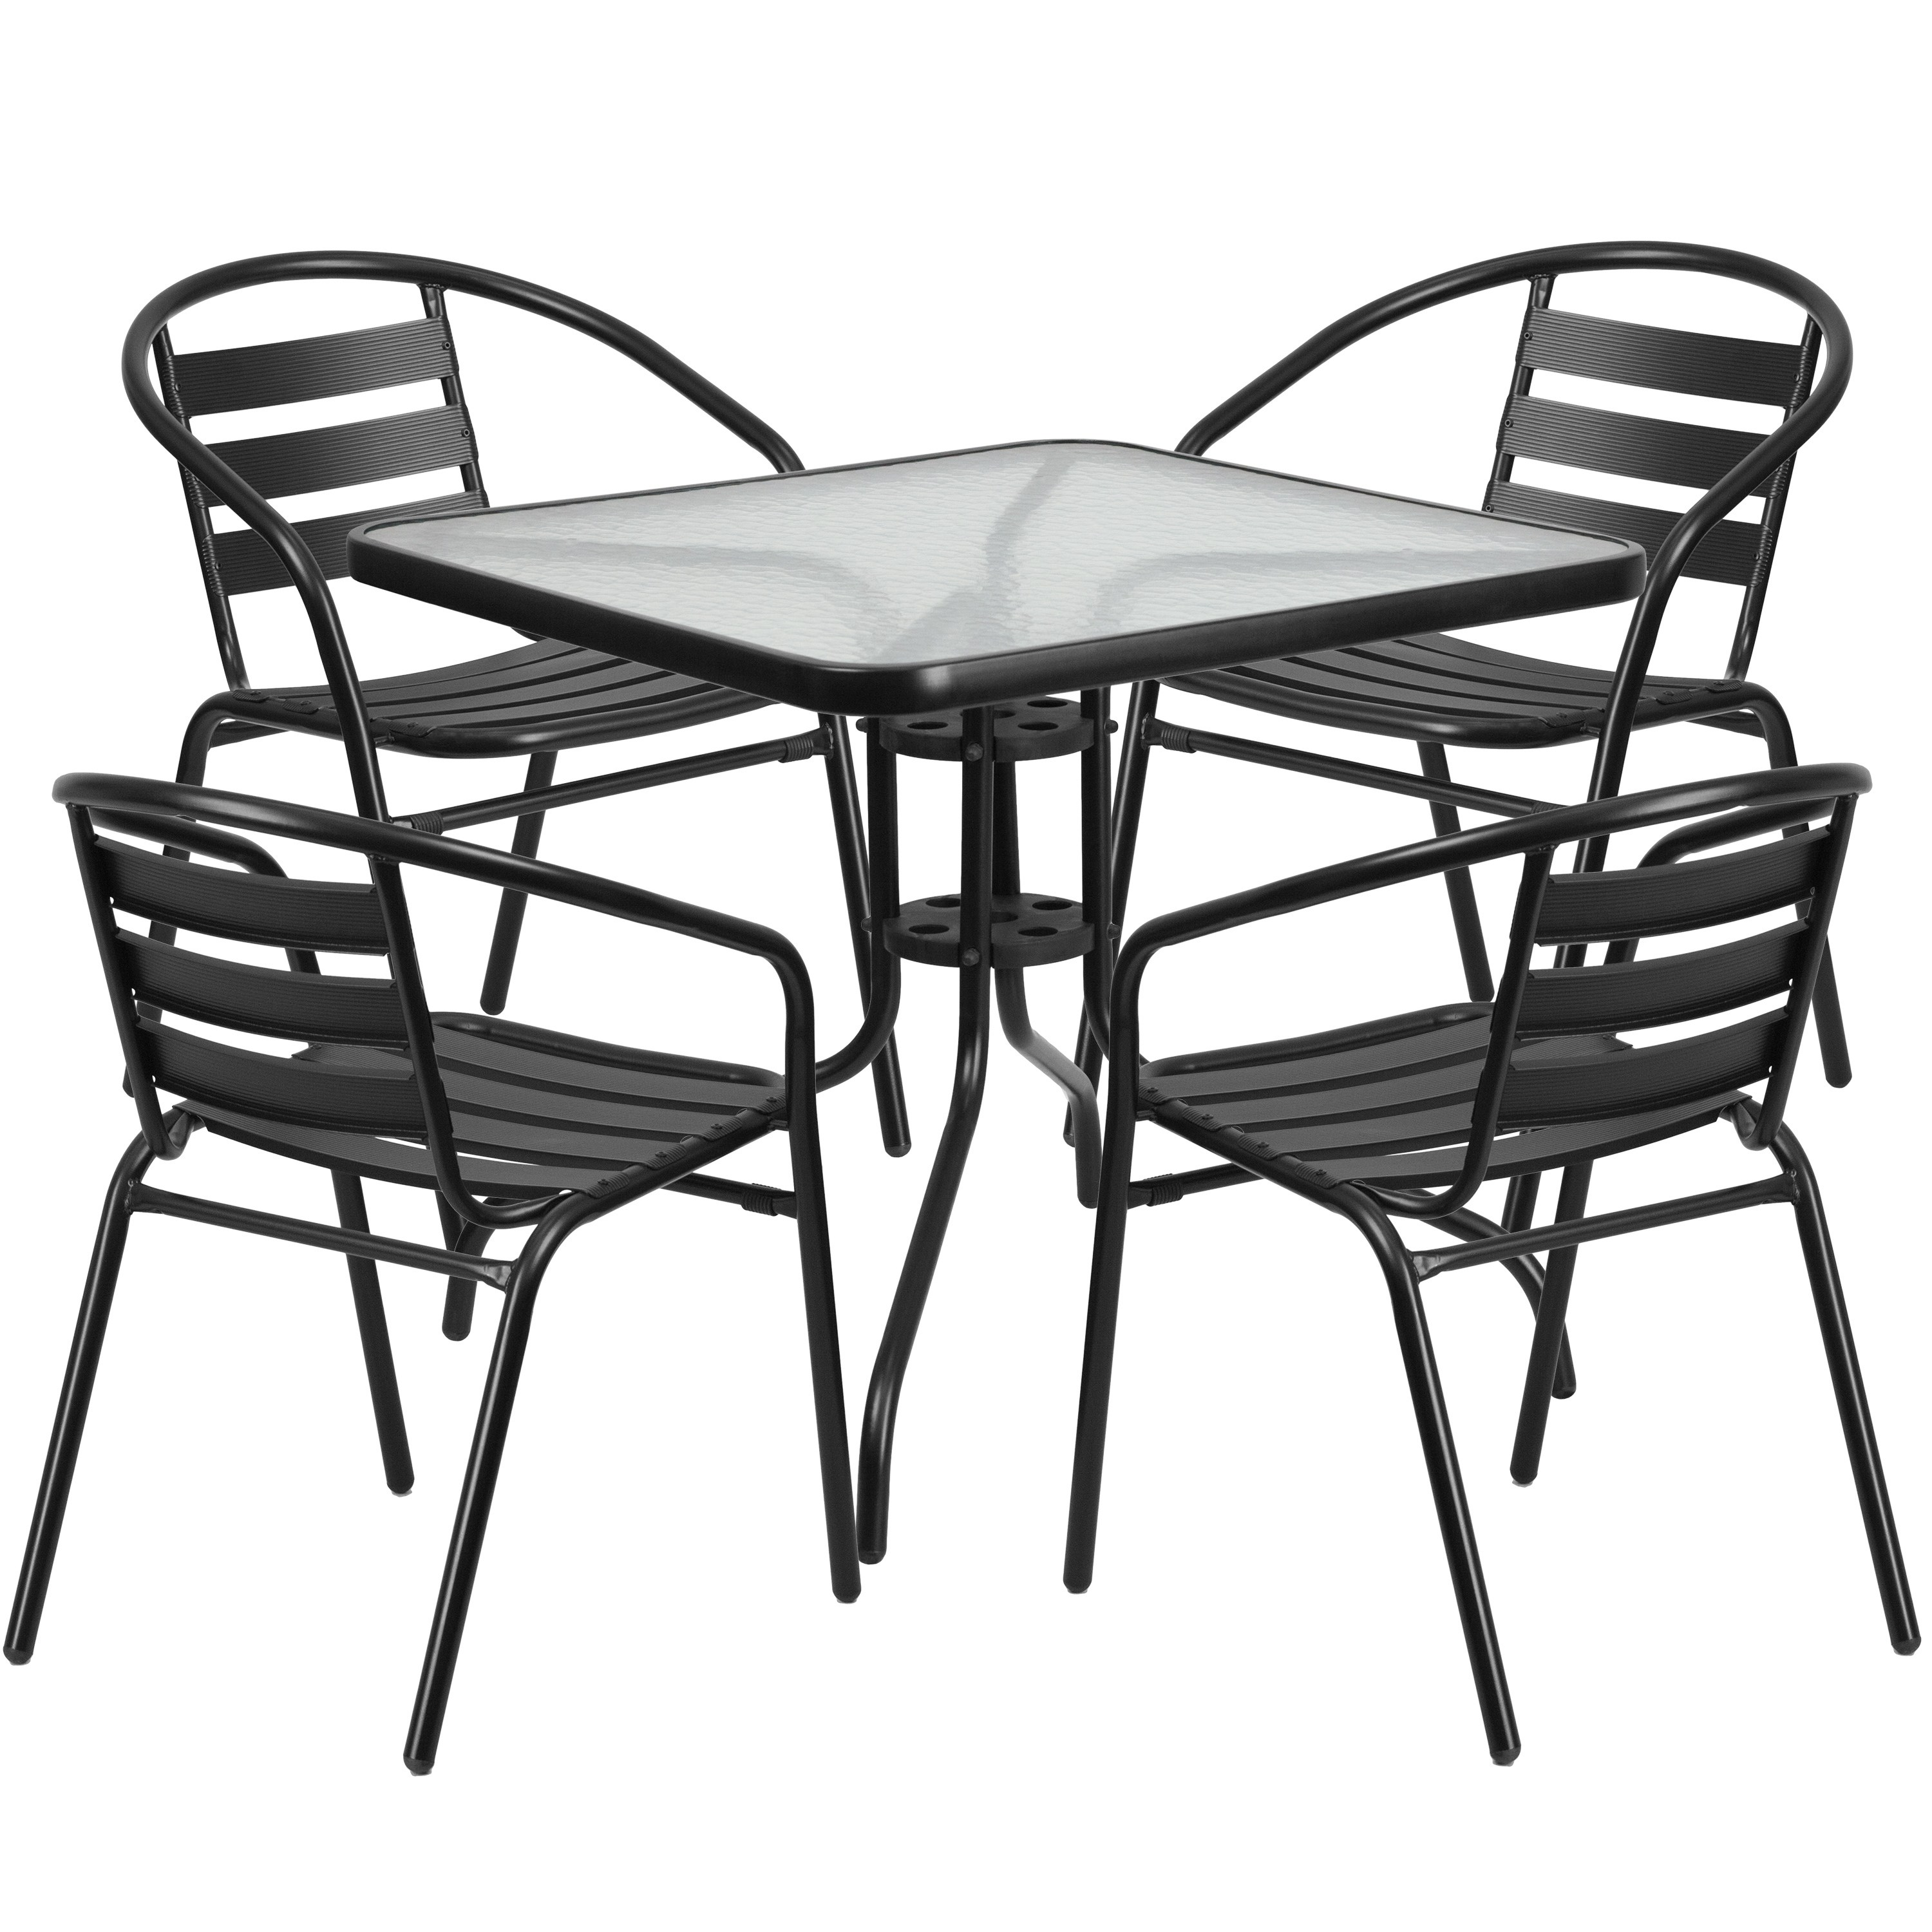 31 5 inch square glass metal table with 4 metal aluminum silver slat stack chairs clear black lancaster home patio furniture